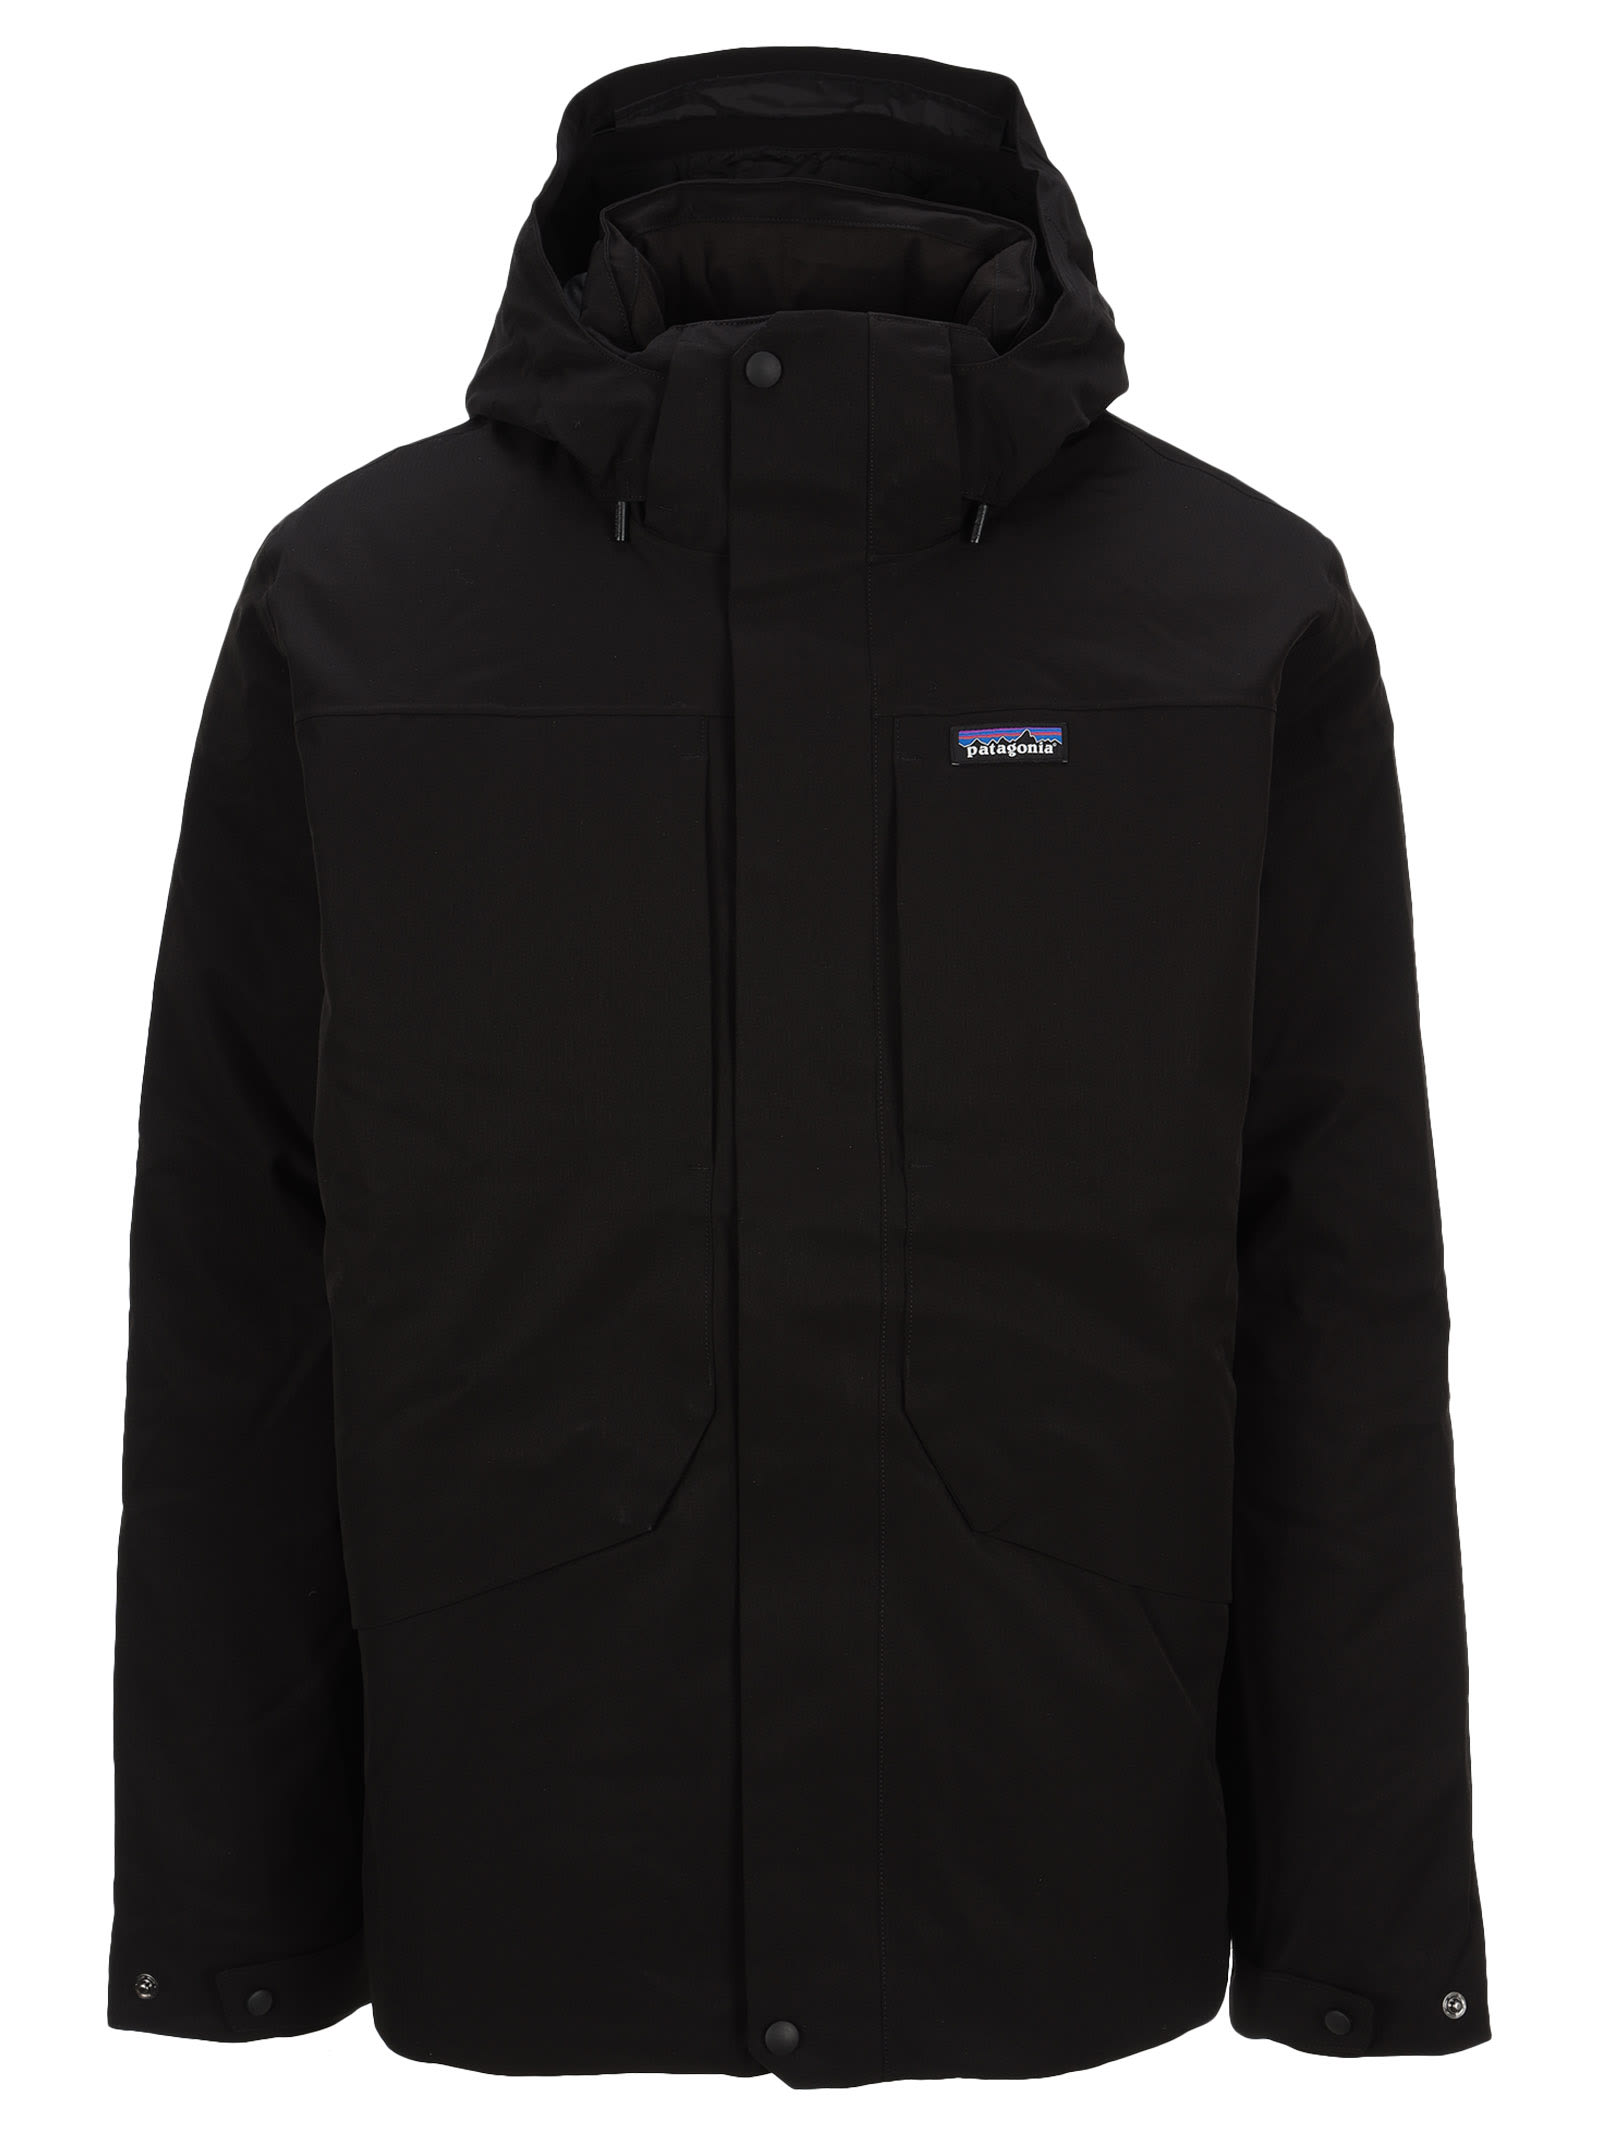 Black Tres Jacket By Patagonia. Featuring: - Drawstring Hood; - Concealed Front Fastening; - Logo Patch At The Chest; - Long Sleeves. Composition: 100% POLYESTER